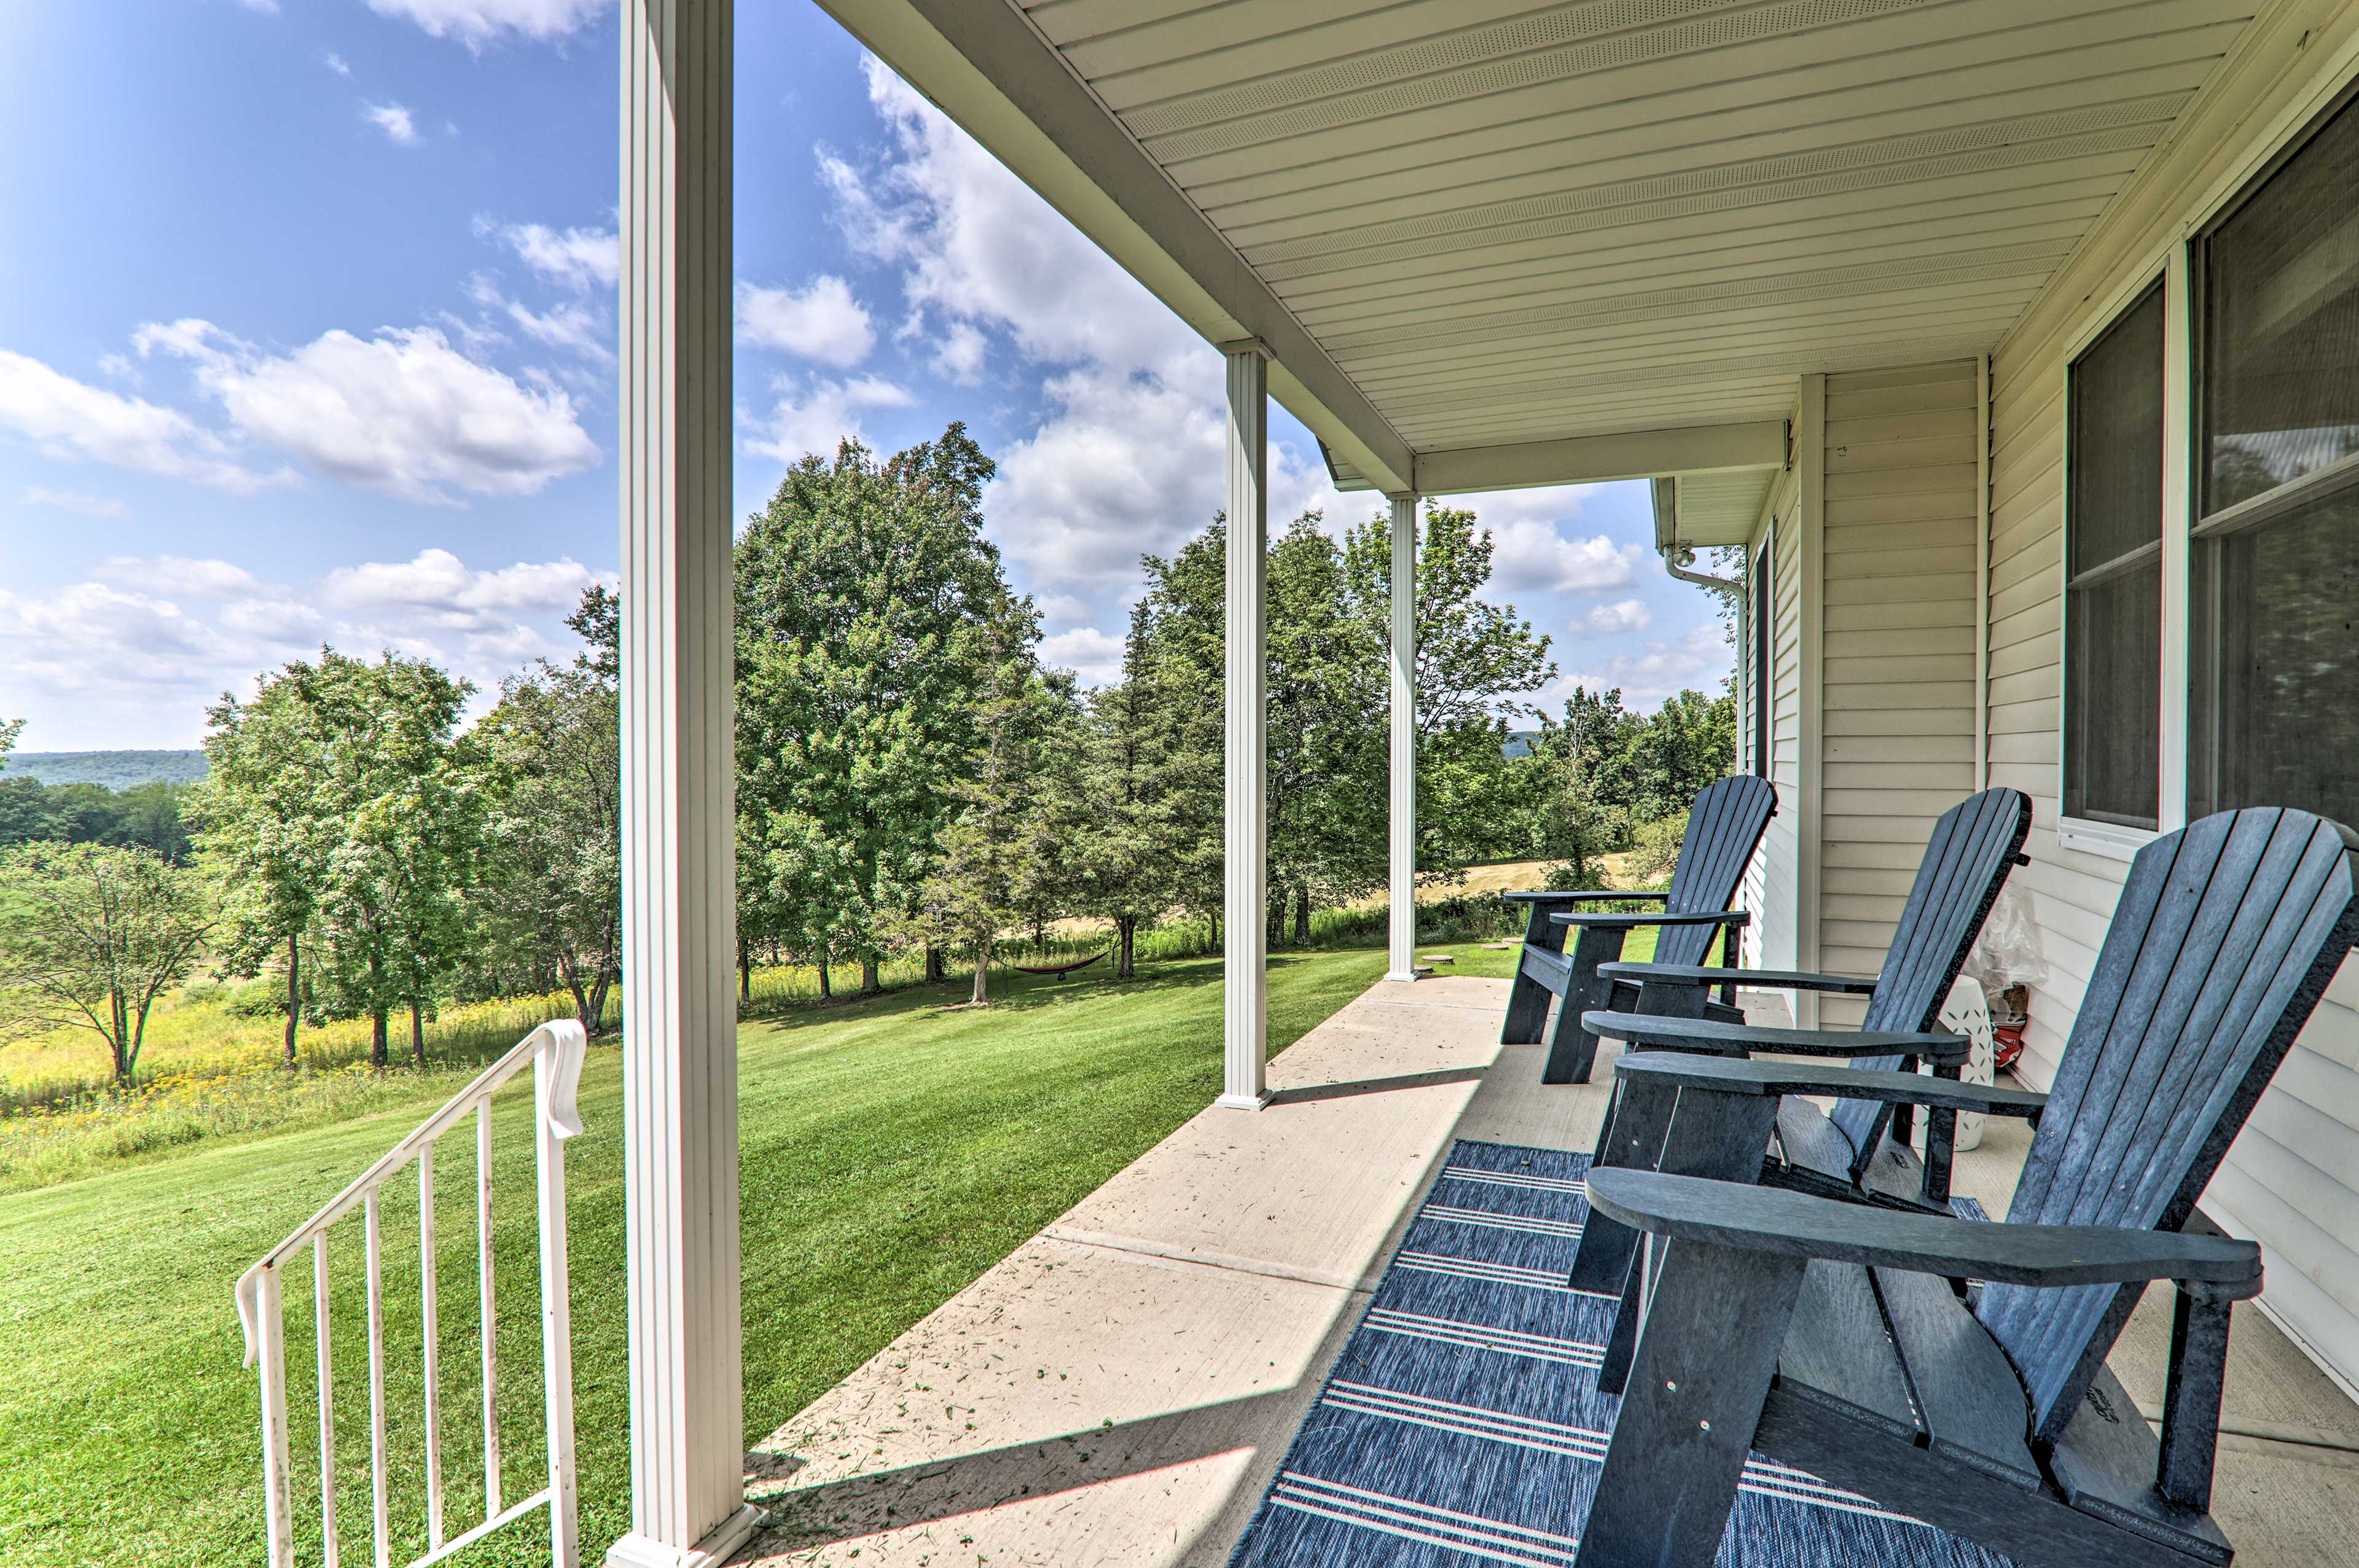 Union Dale Vacation Rental   3BR   2BA   2,175 Sq Ft   1 Story